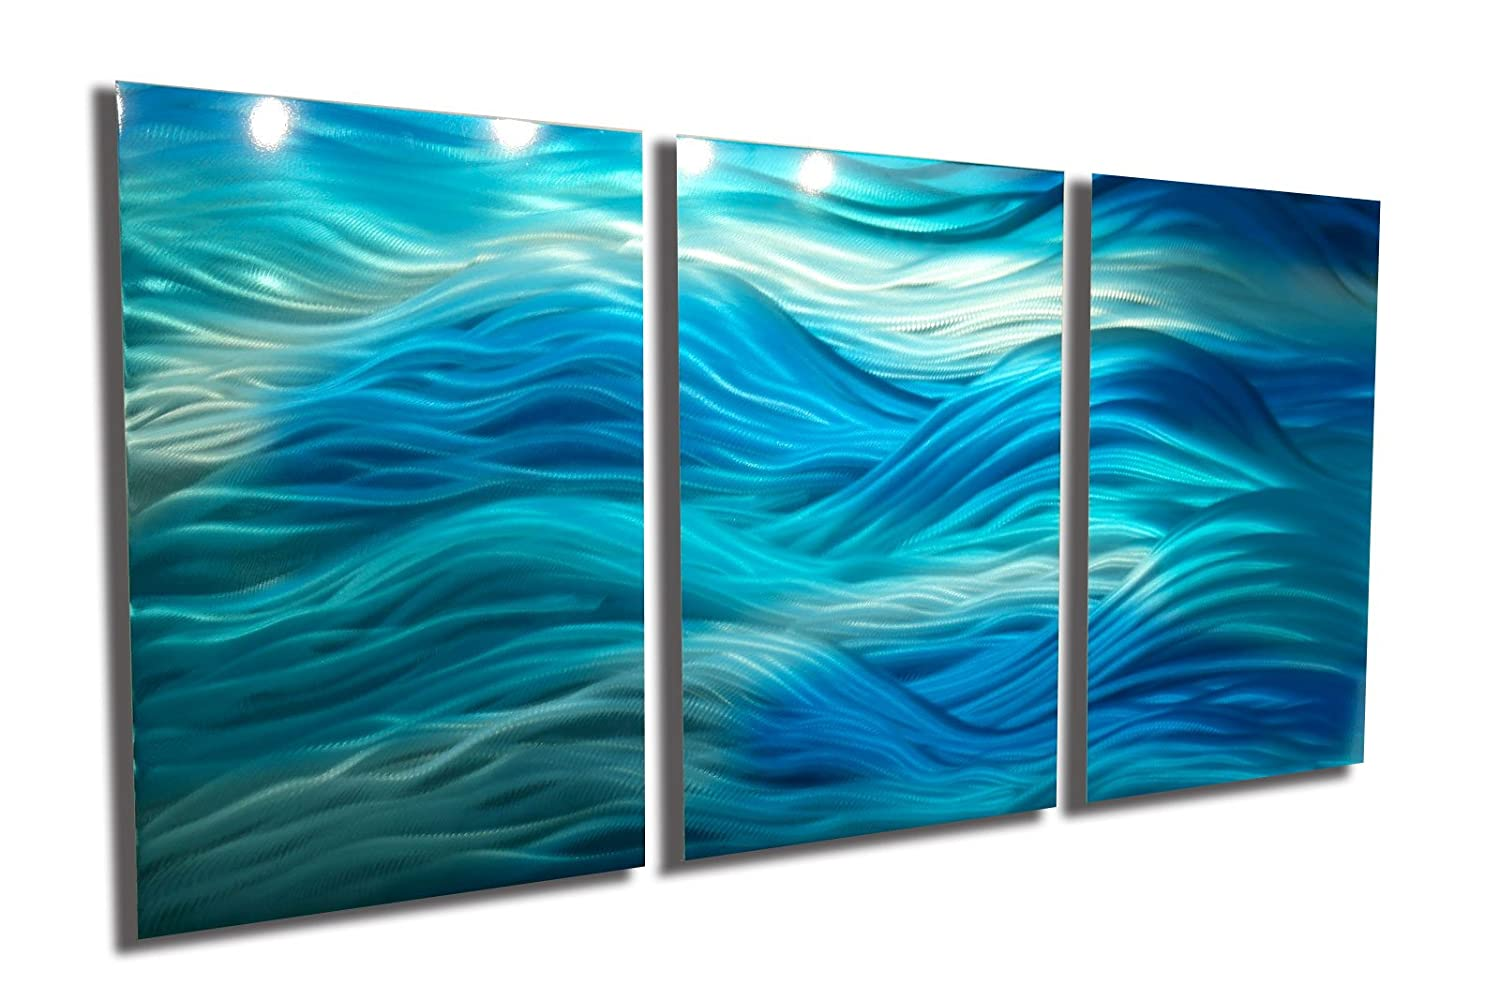 Amazon com miles shay metal wall art modern home decor abstract artwork sculpture caribbean by paintings